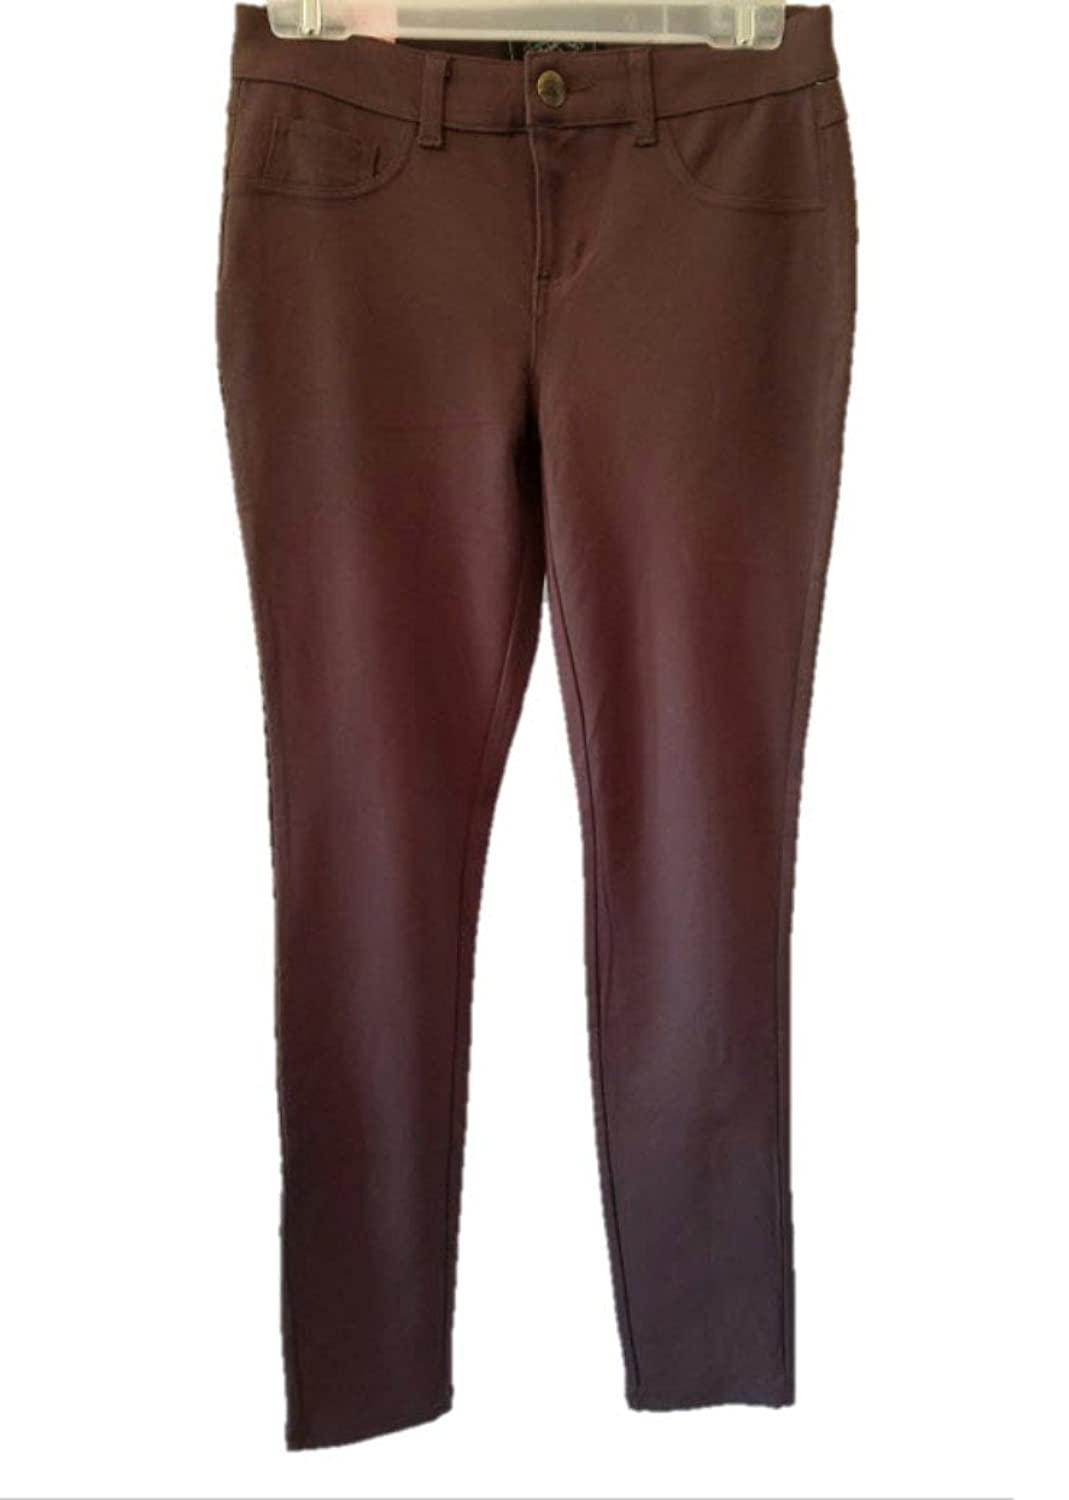 One Five One Ladies Chocolate Pants size 6